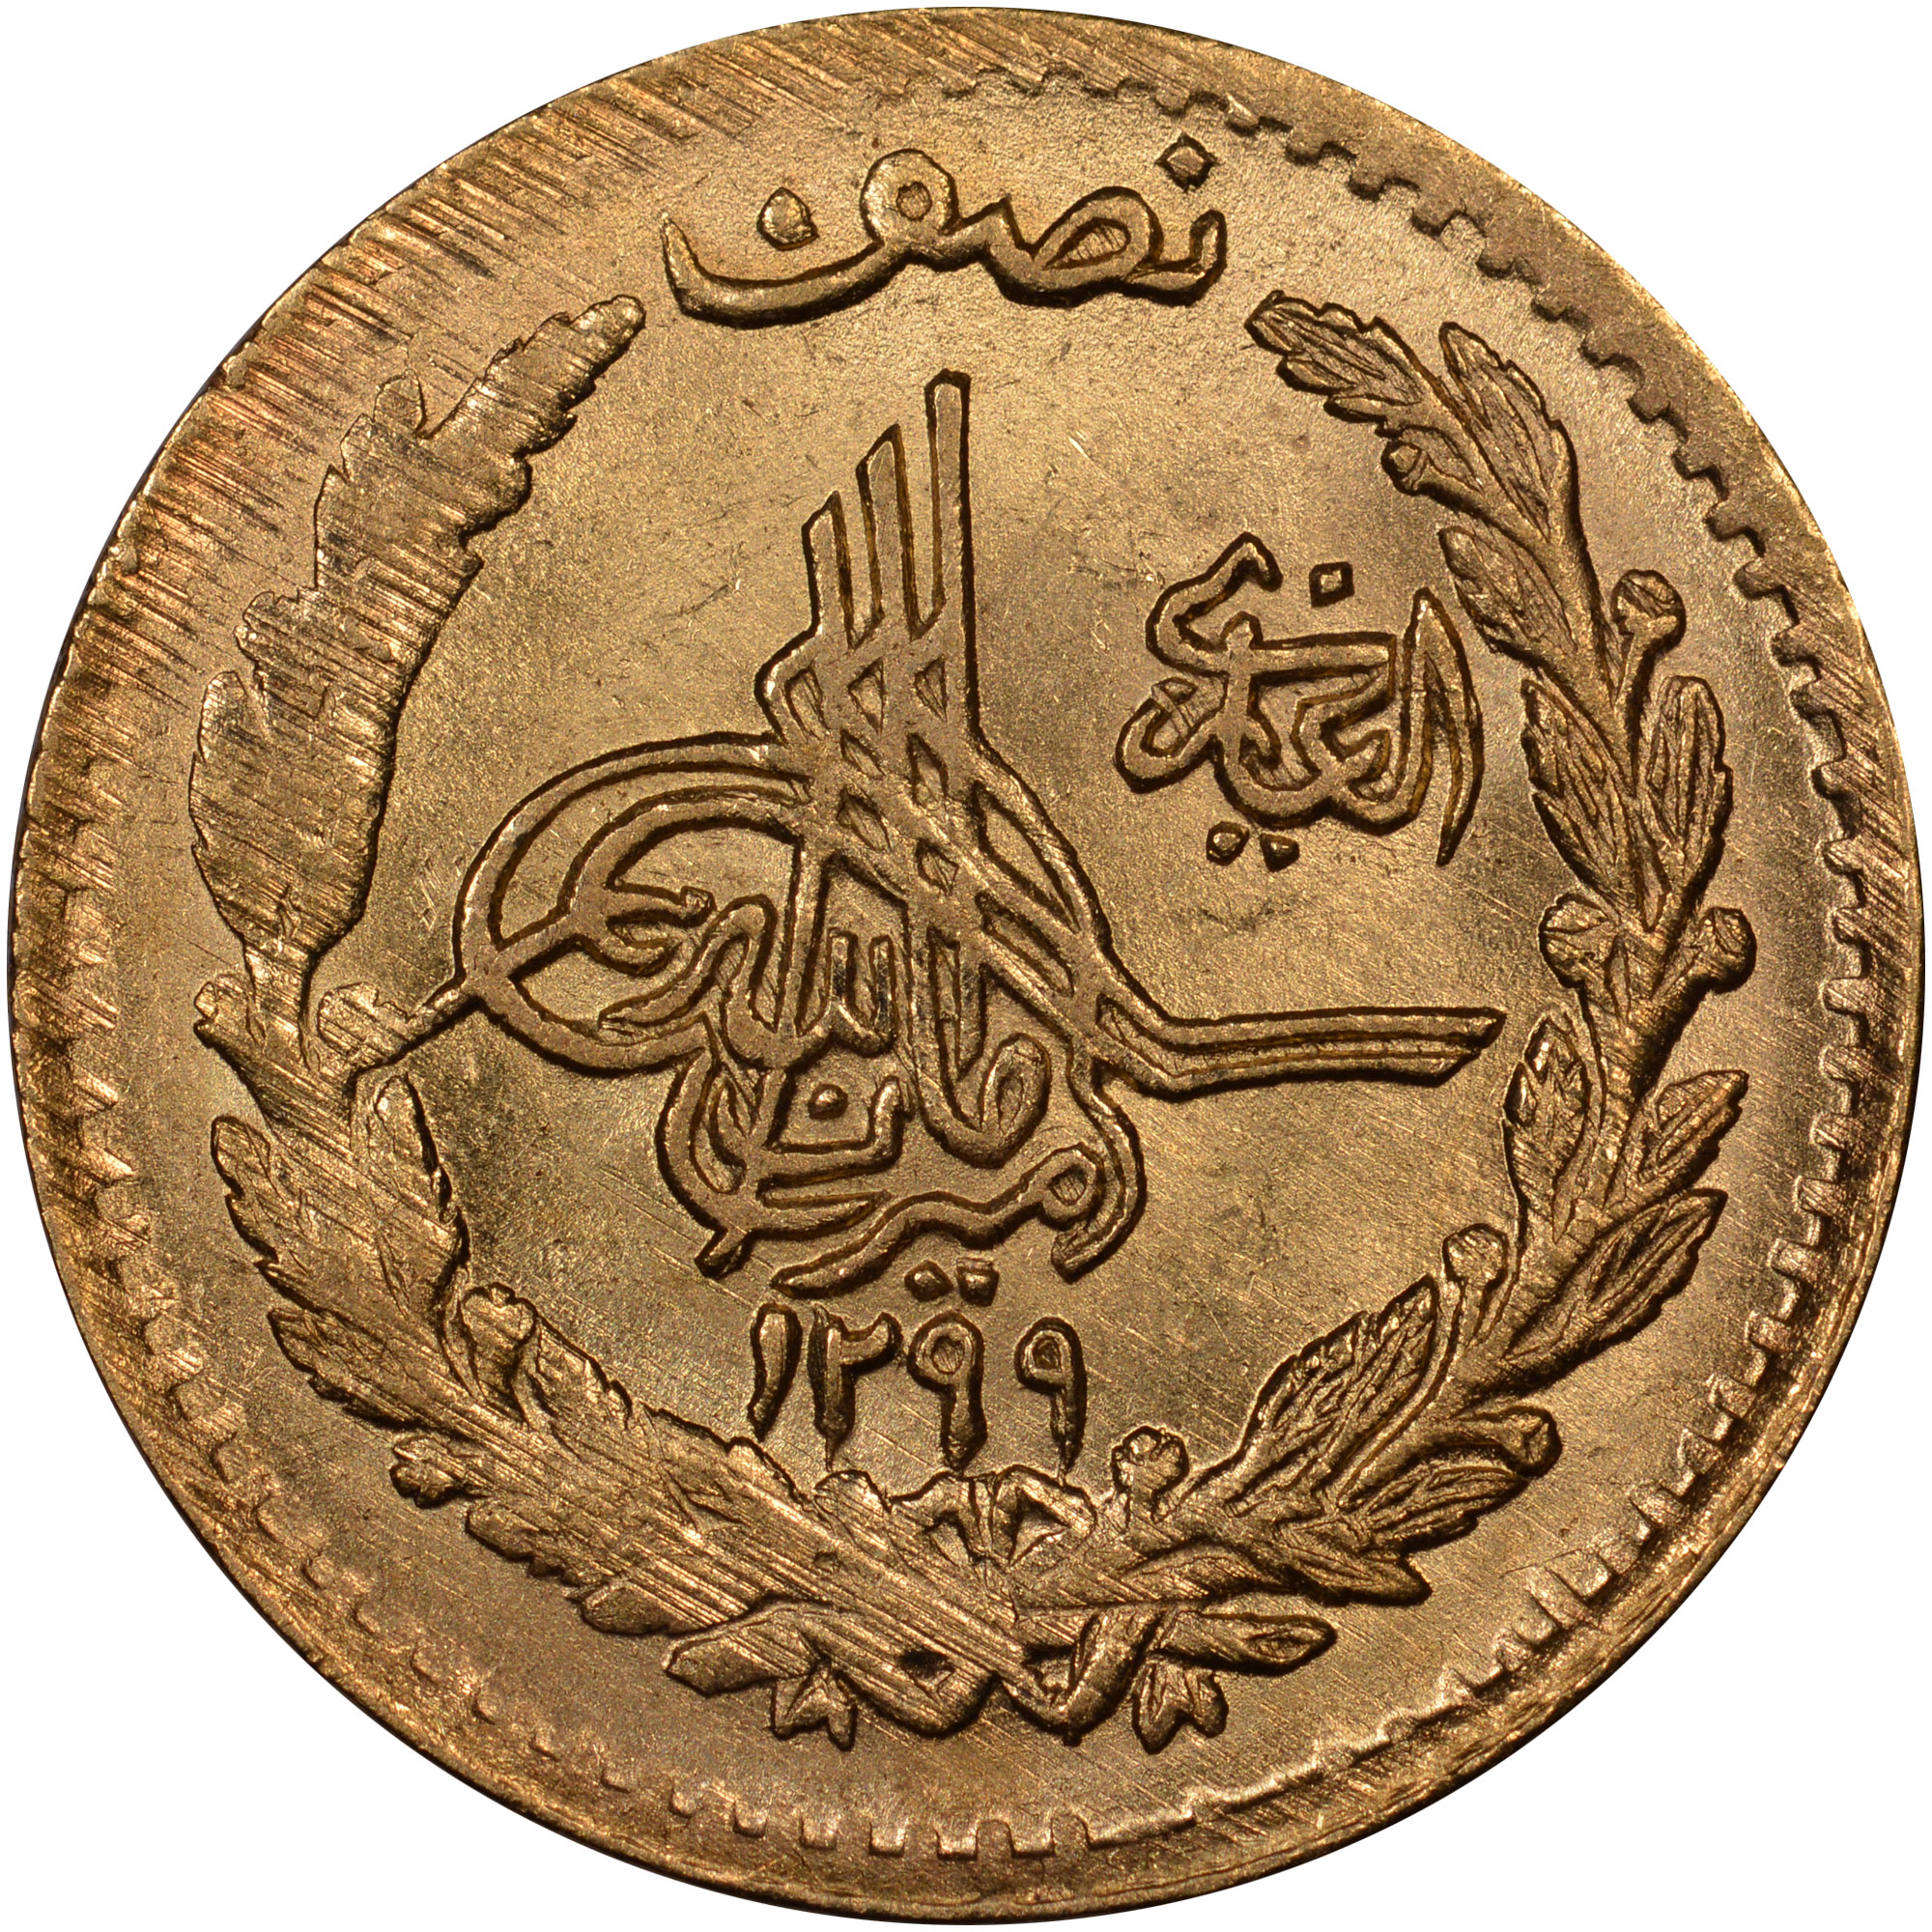 1299 (1920) Afghanistan 1/2 Amani, 5 Rupees reverse